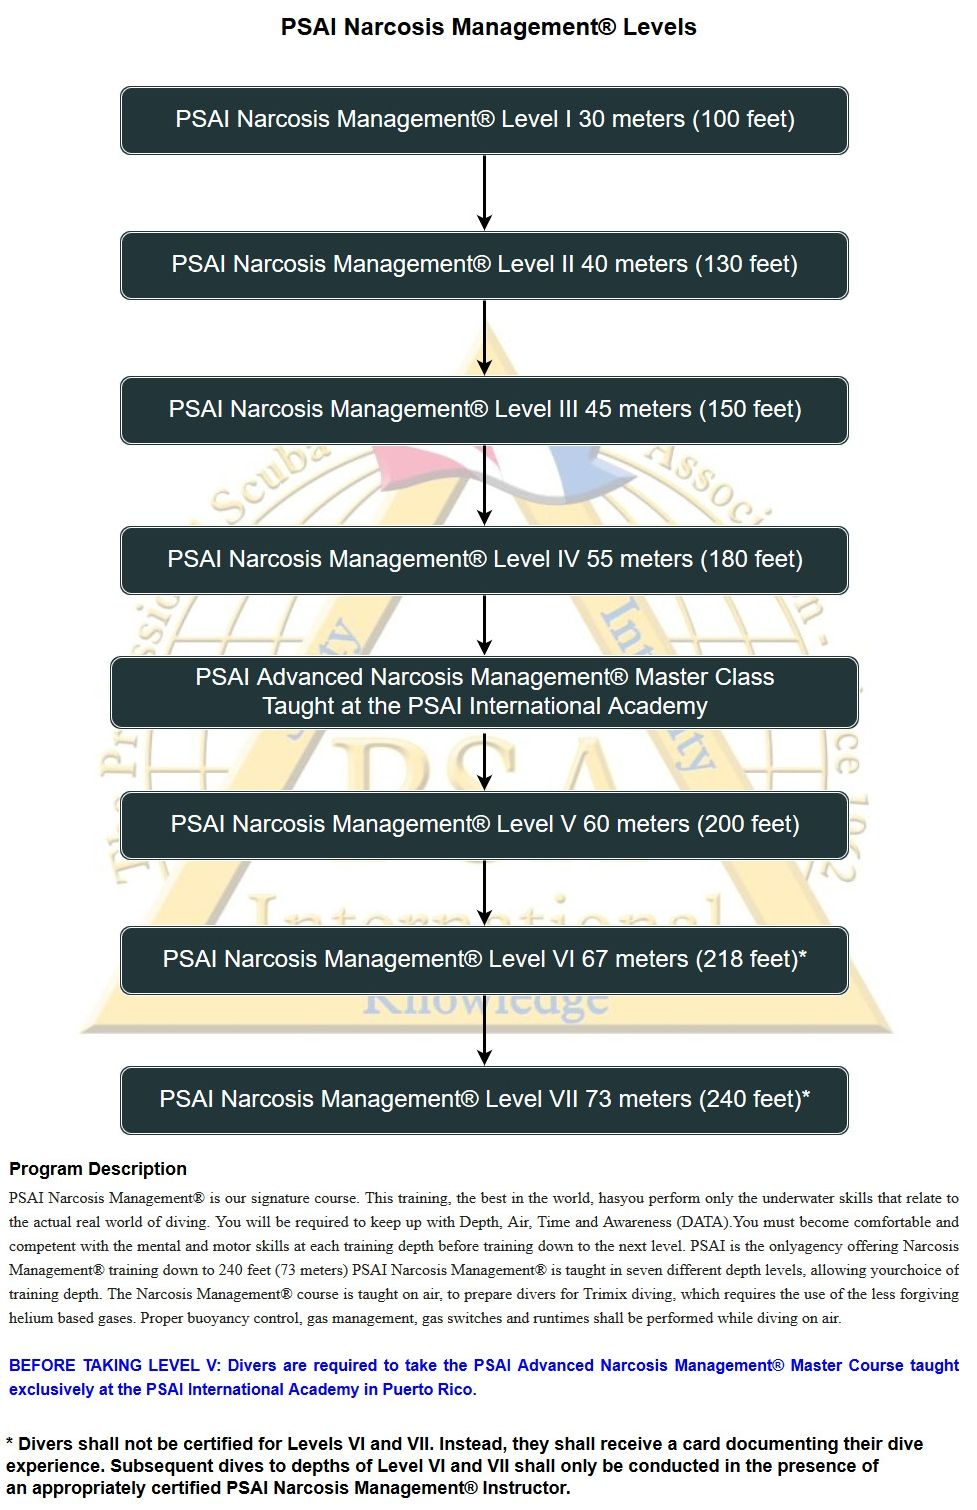 psai narcosis management levels flowchart